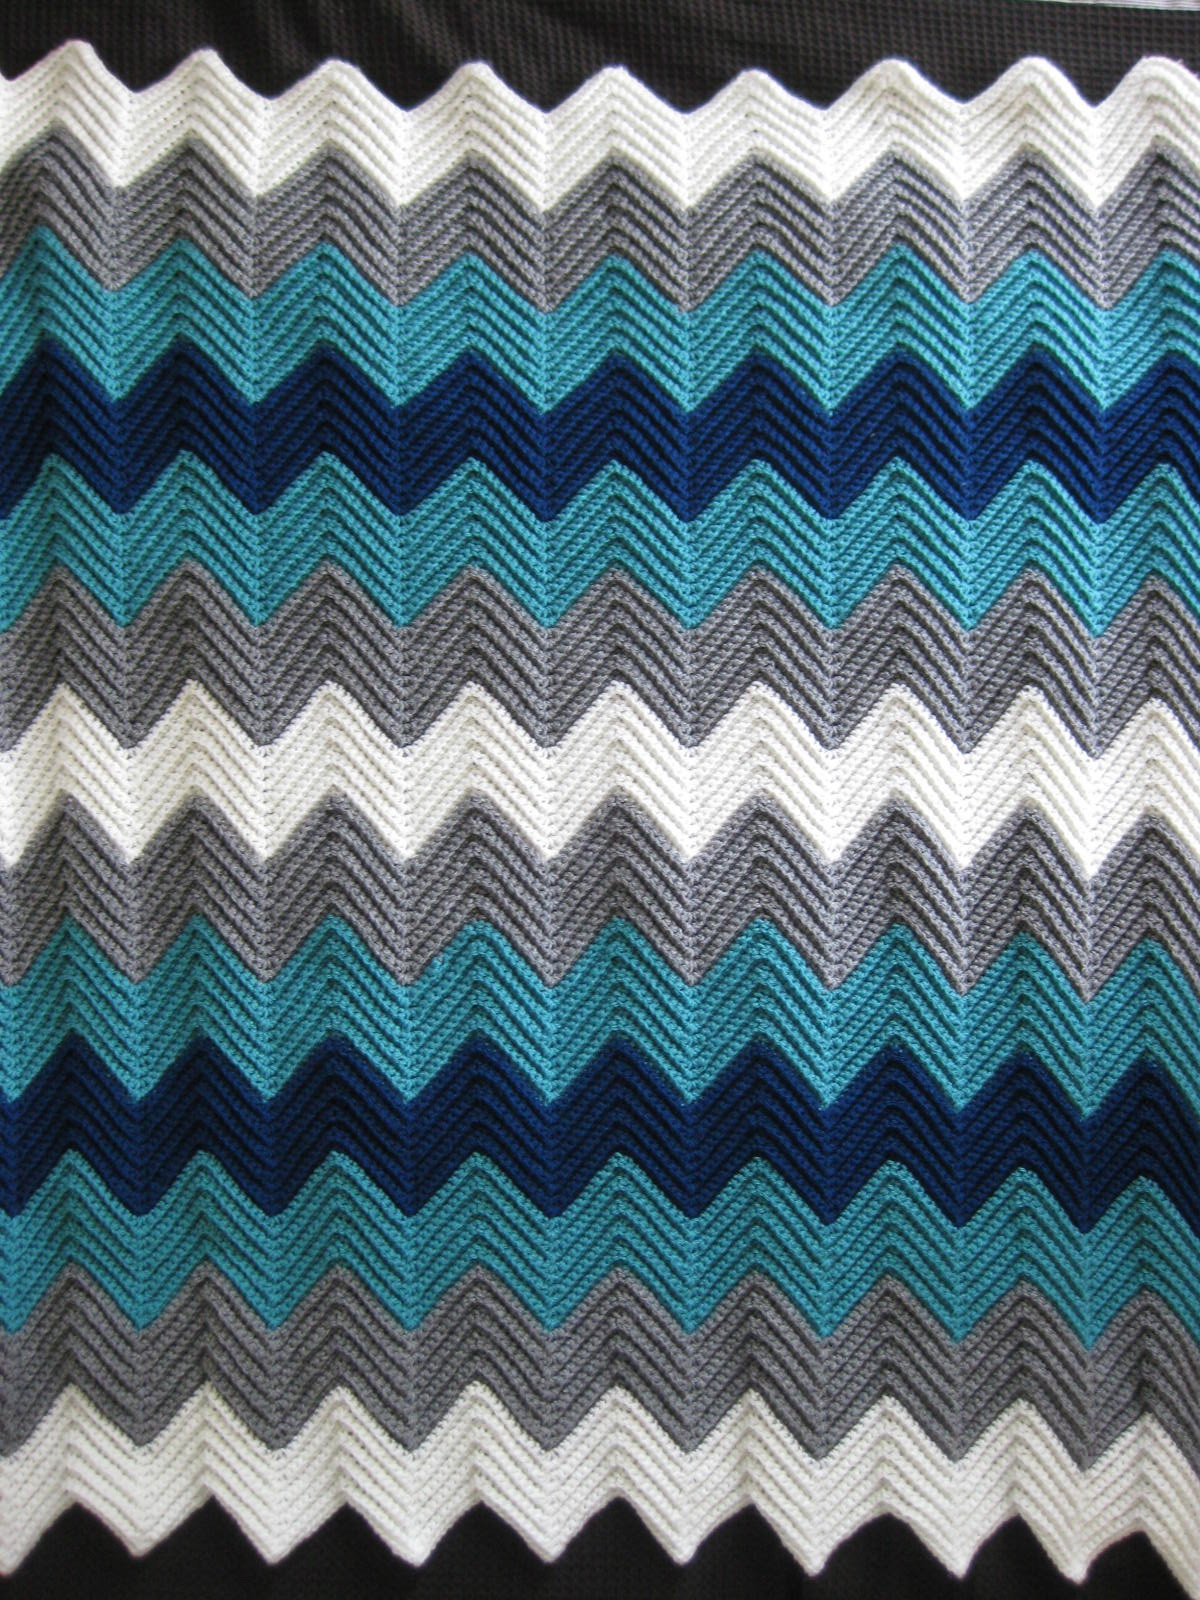 Chevron Afghan Pattern Fresh Chevron Afghan 1 Of Top 40 Ideas Chevron Afghan Pattern